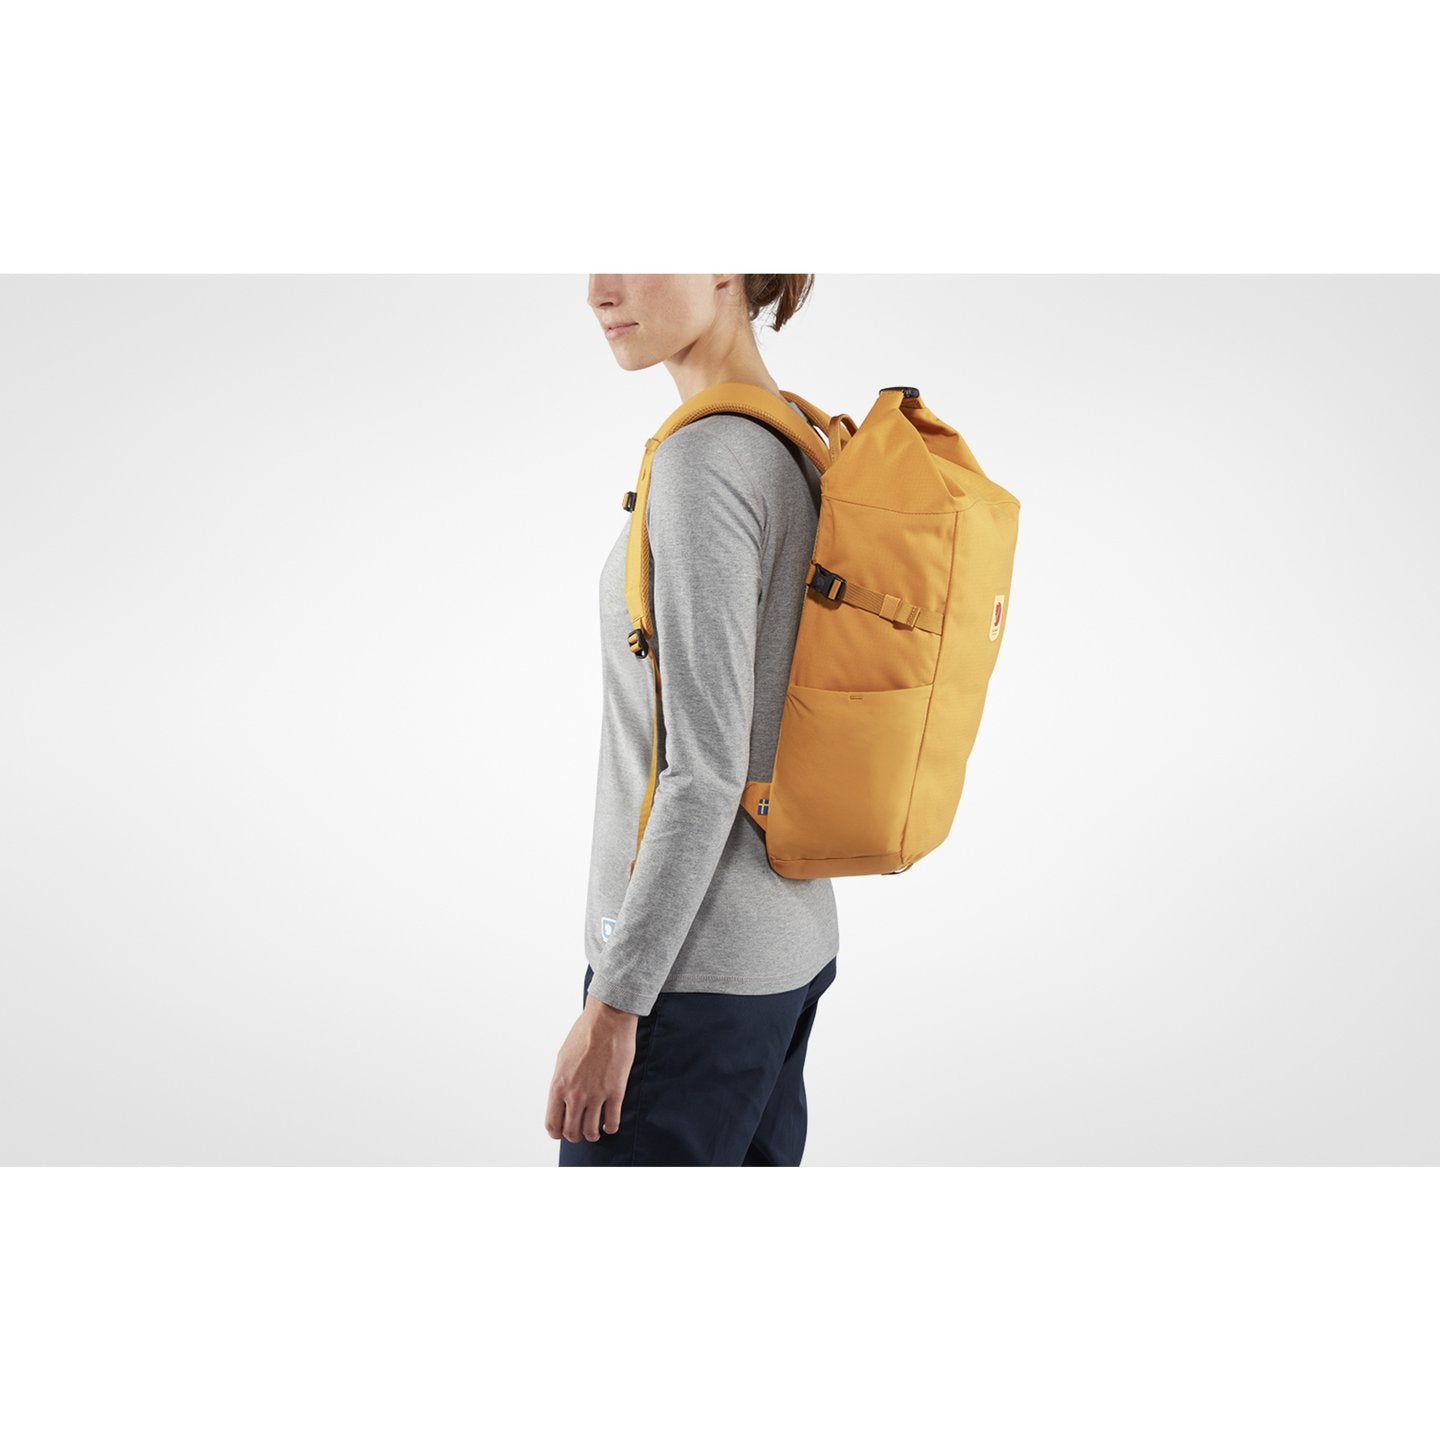 Fjallraven Ulvö Rolltop 23 - Find Your Feet Australia Hobart Launceston Tasmania